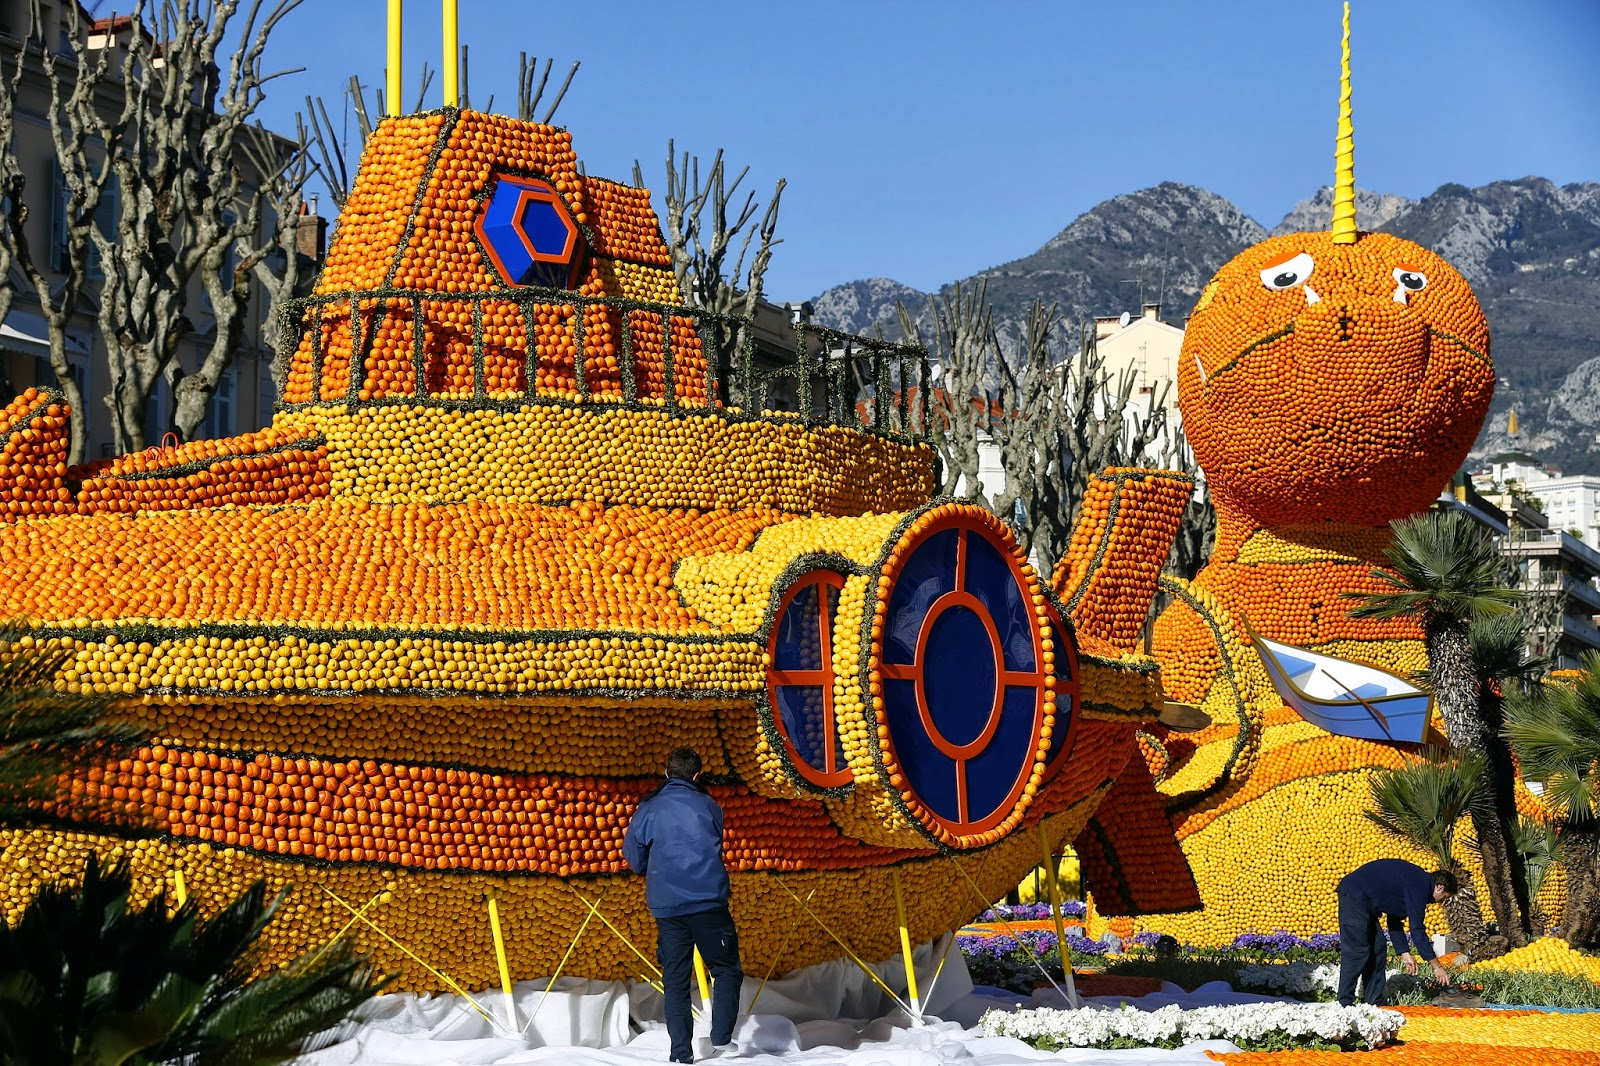 2014, 81st Edition, Animal, Festival, Fete du Citron, France, French Riviera, Fruits, Leagues Under the Sea, Lemon Carnival, Lemons, Menton, Octopus, Oranges, Sculptures, Submarine, Theme, Turtle, Whale,